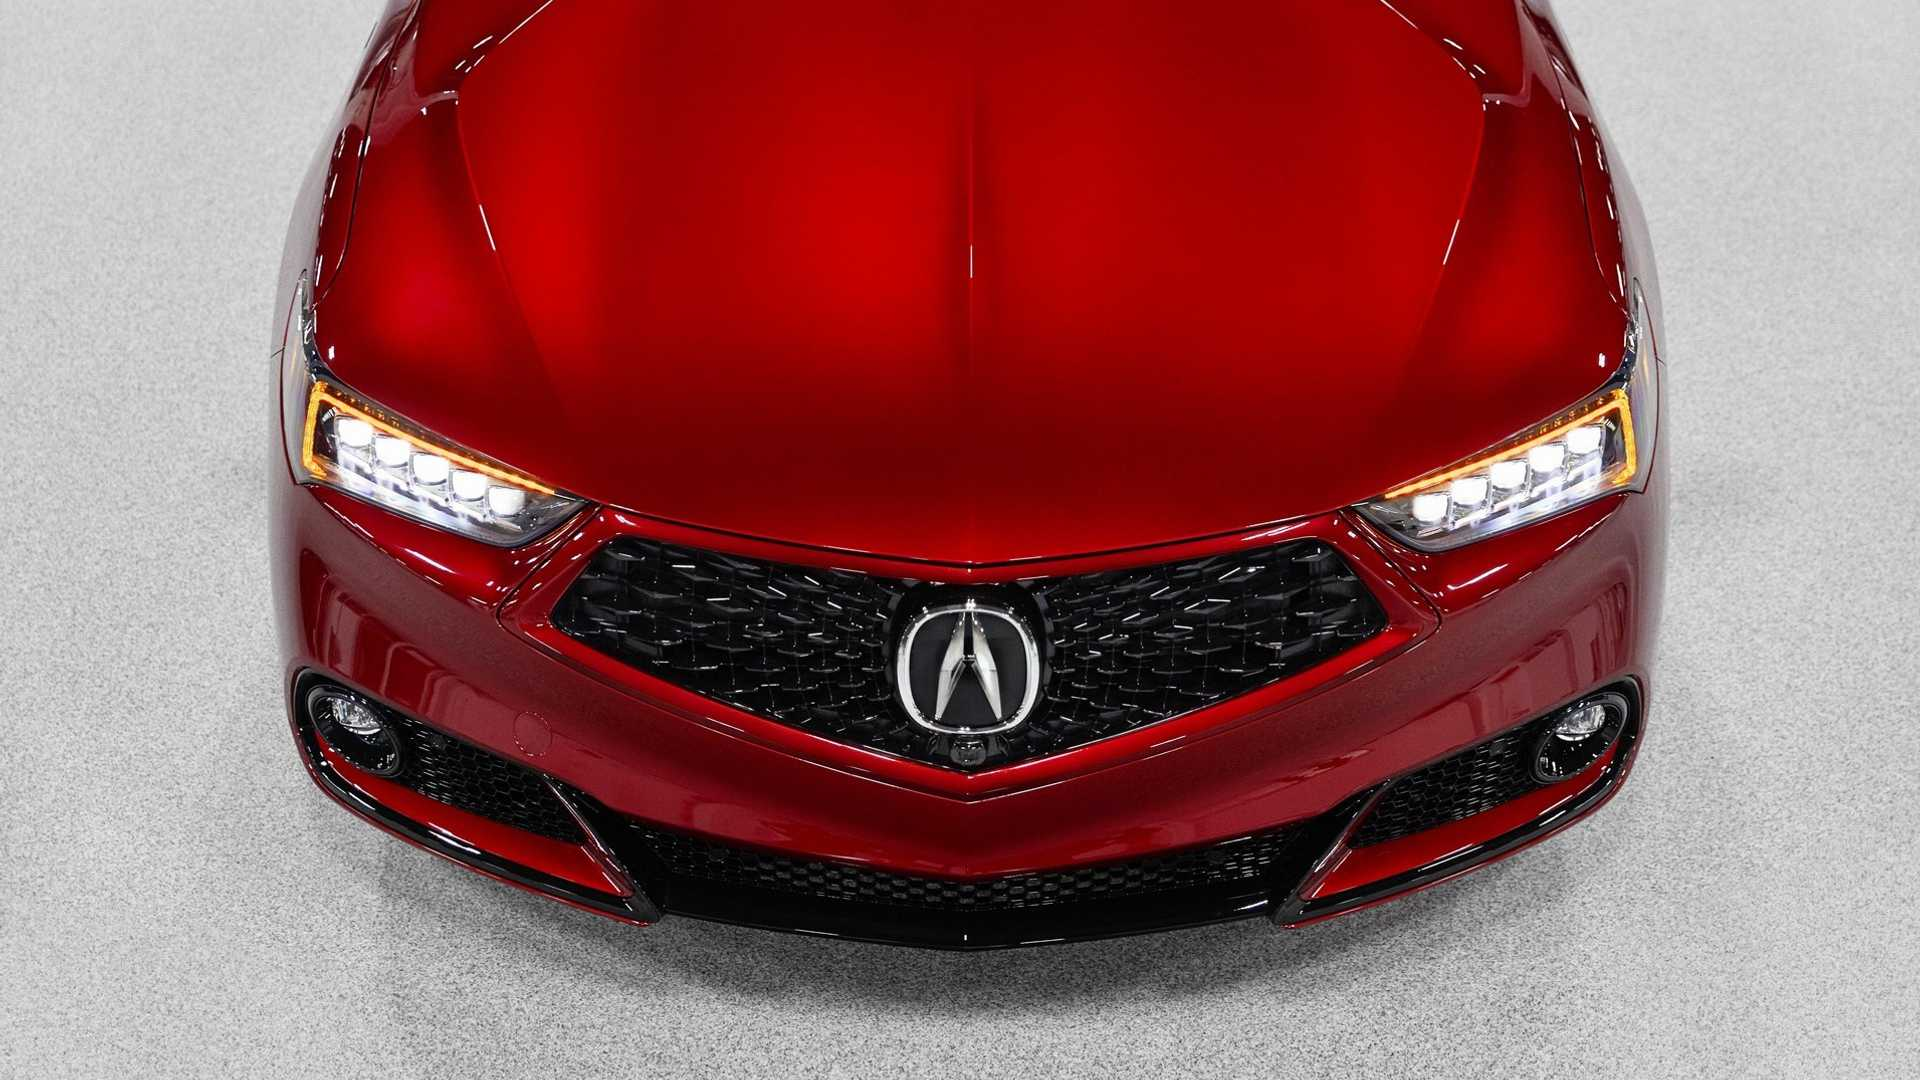 2020 Acura TLX PMC Edition Hood Wallpaper (6)